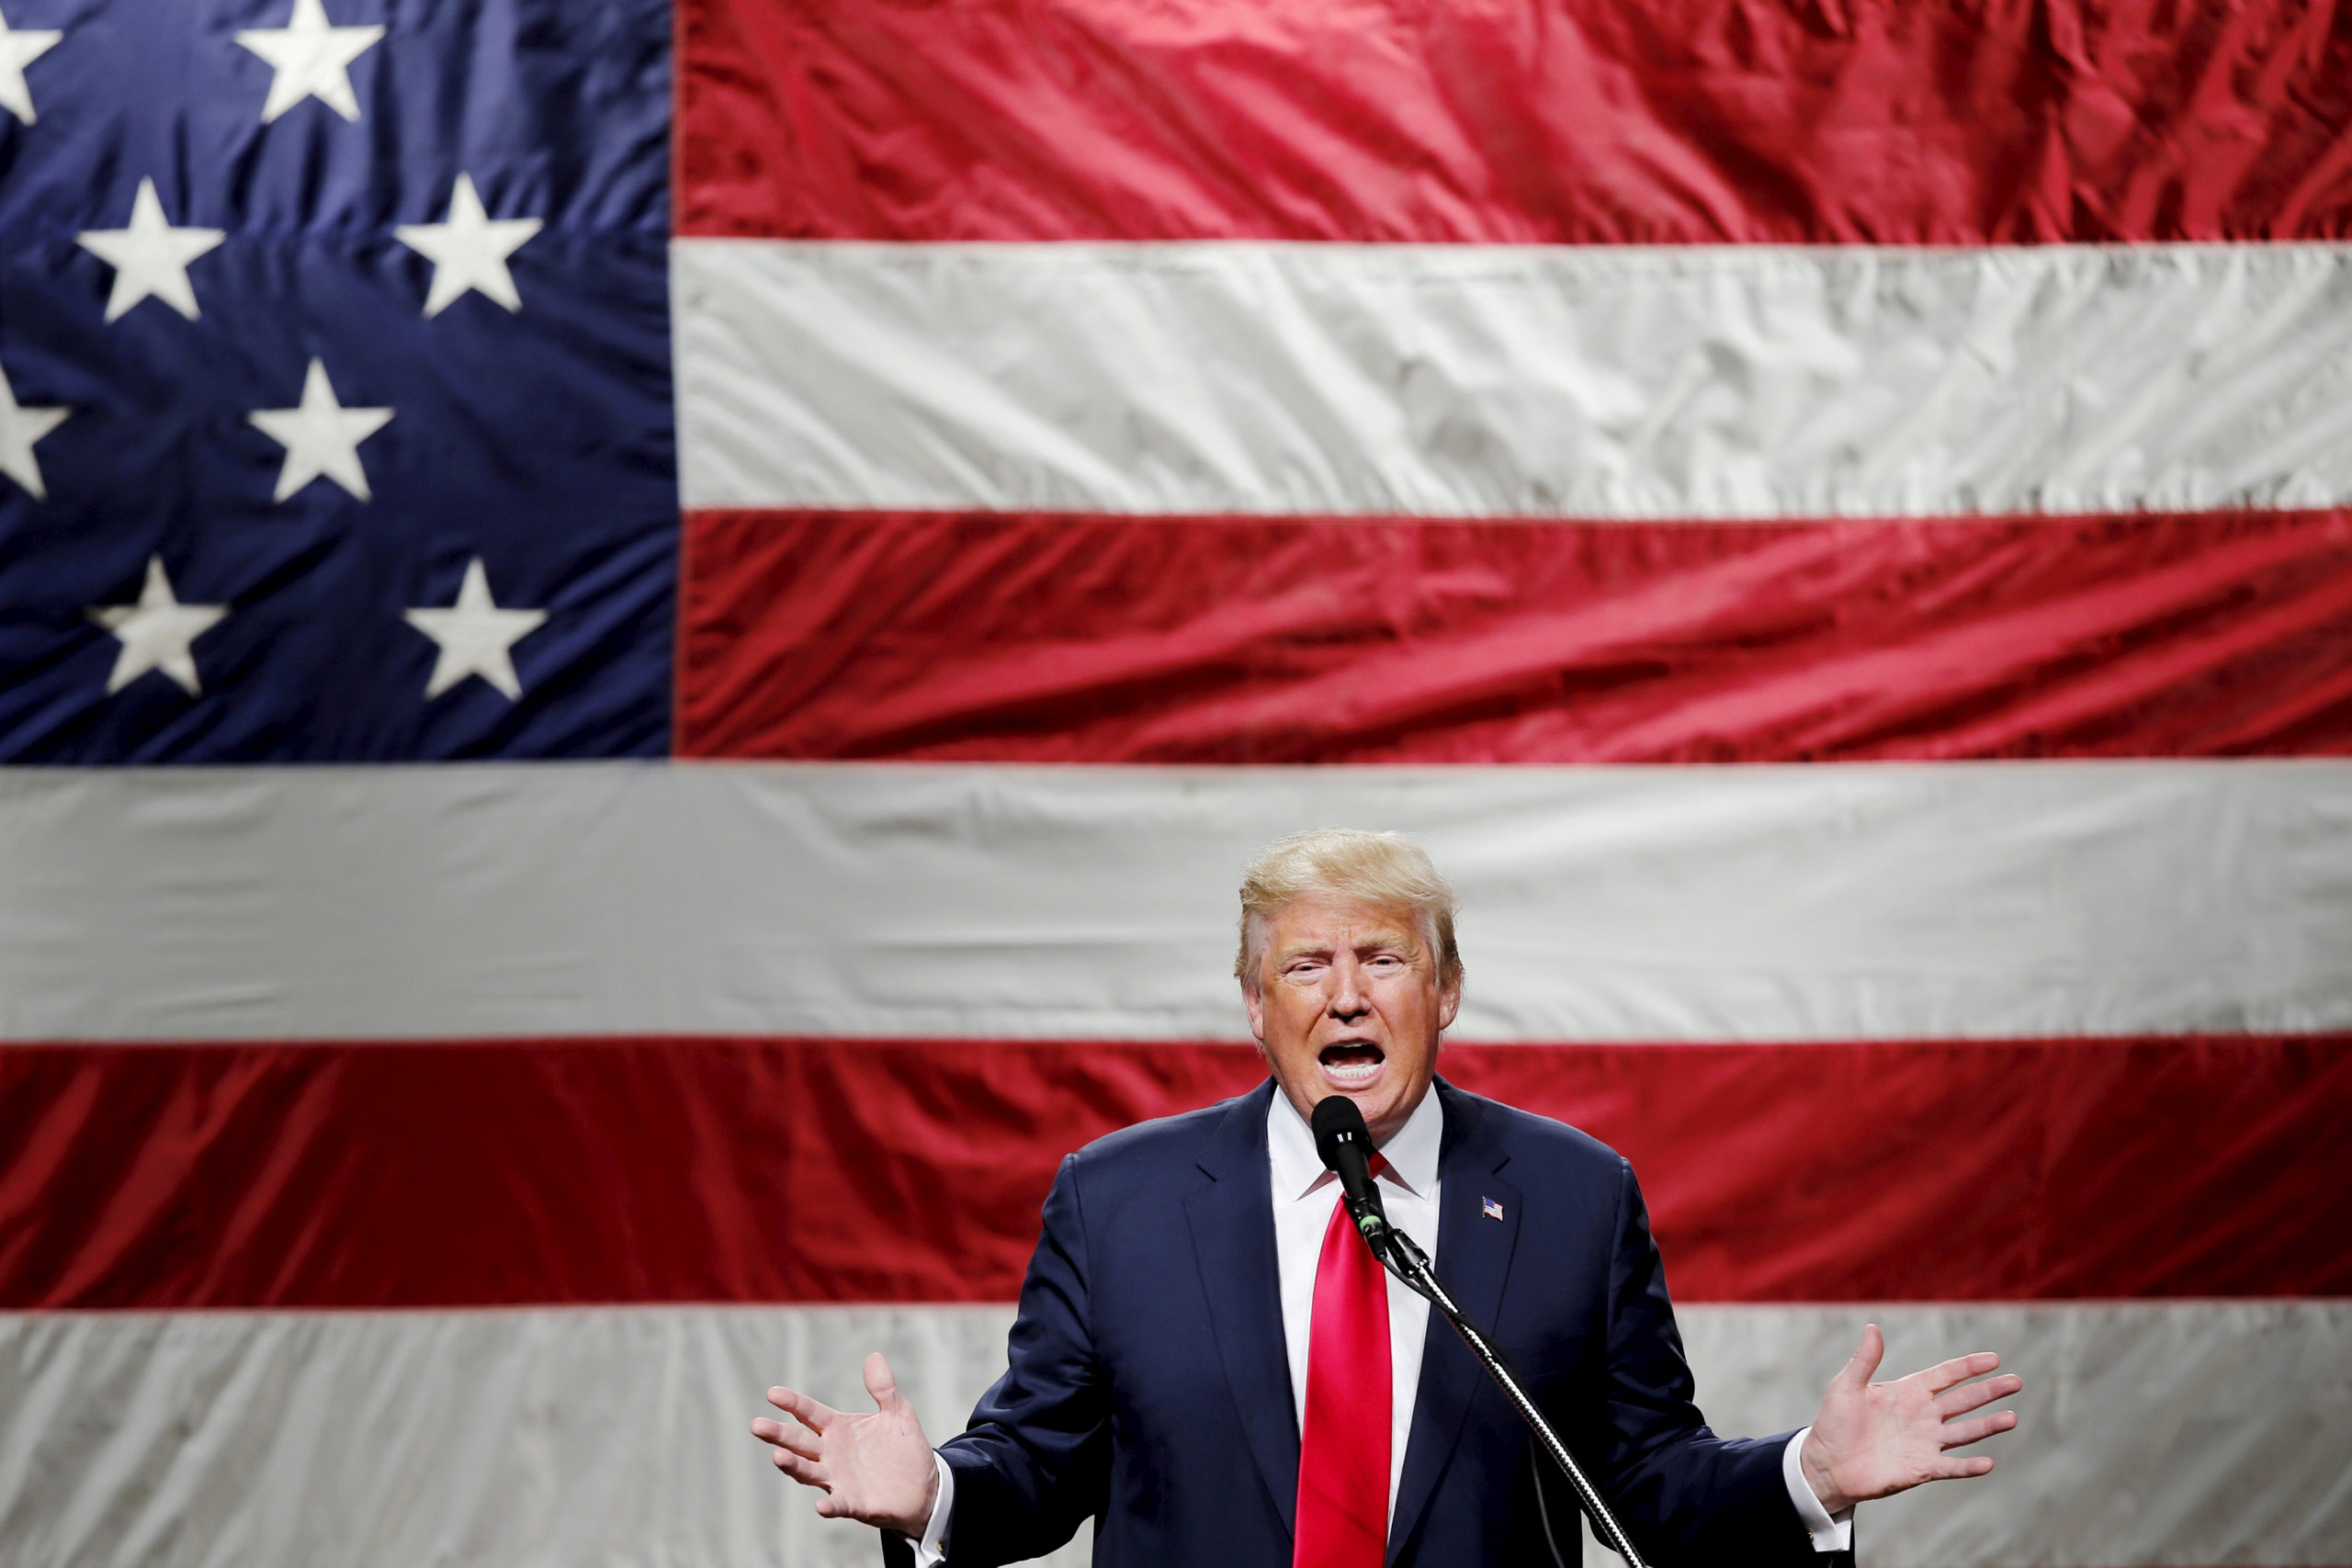 Republican presidential candidate Donald Trump speaks to supporters during a campaign rally at Mid-Hudson Civic Center in Poughkeepsie, New York, on April 17, 2016.